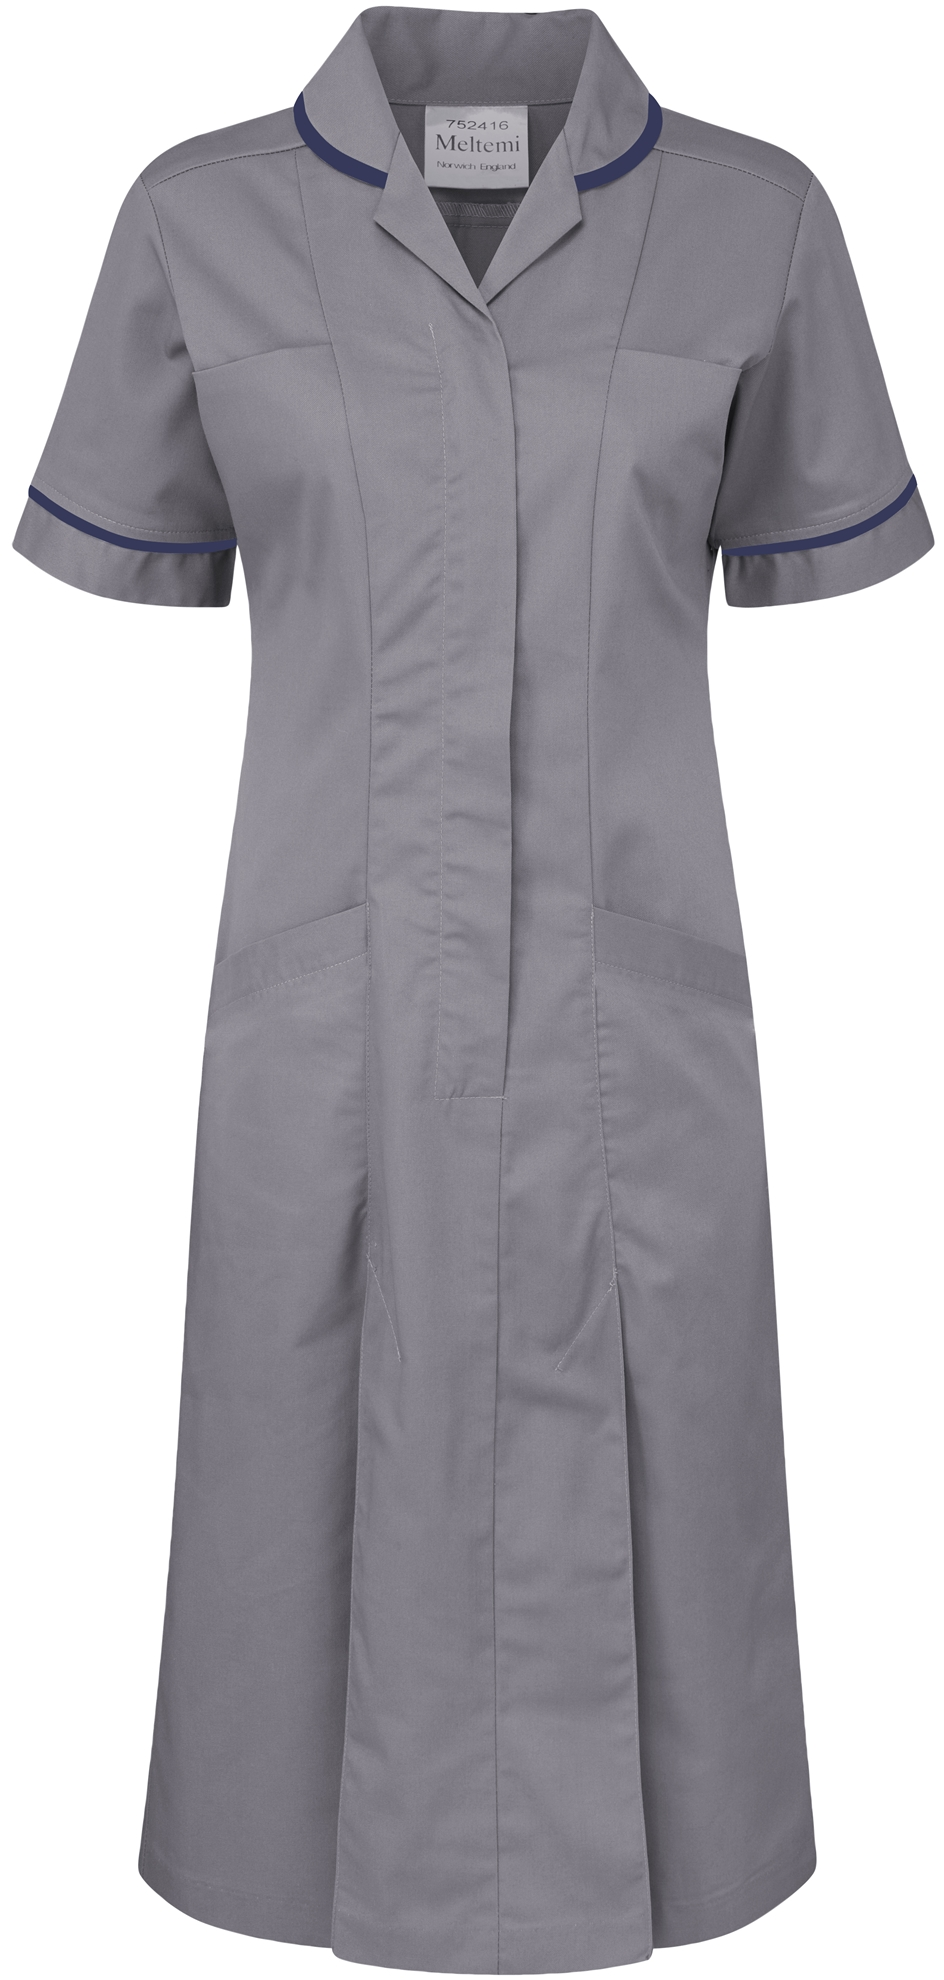 Picture of Plain Colour Dress - Hospital Grey/Navy